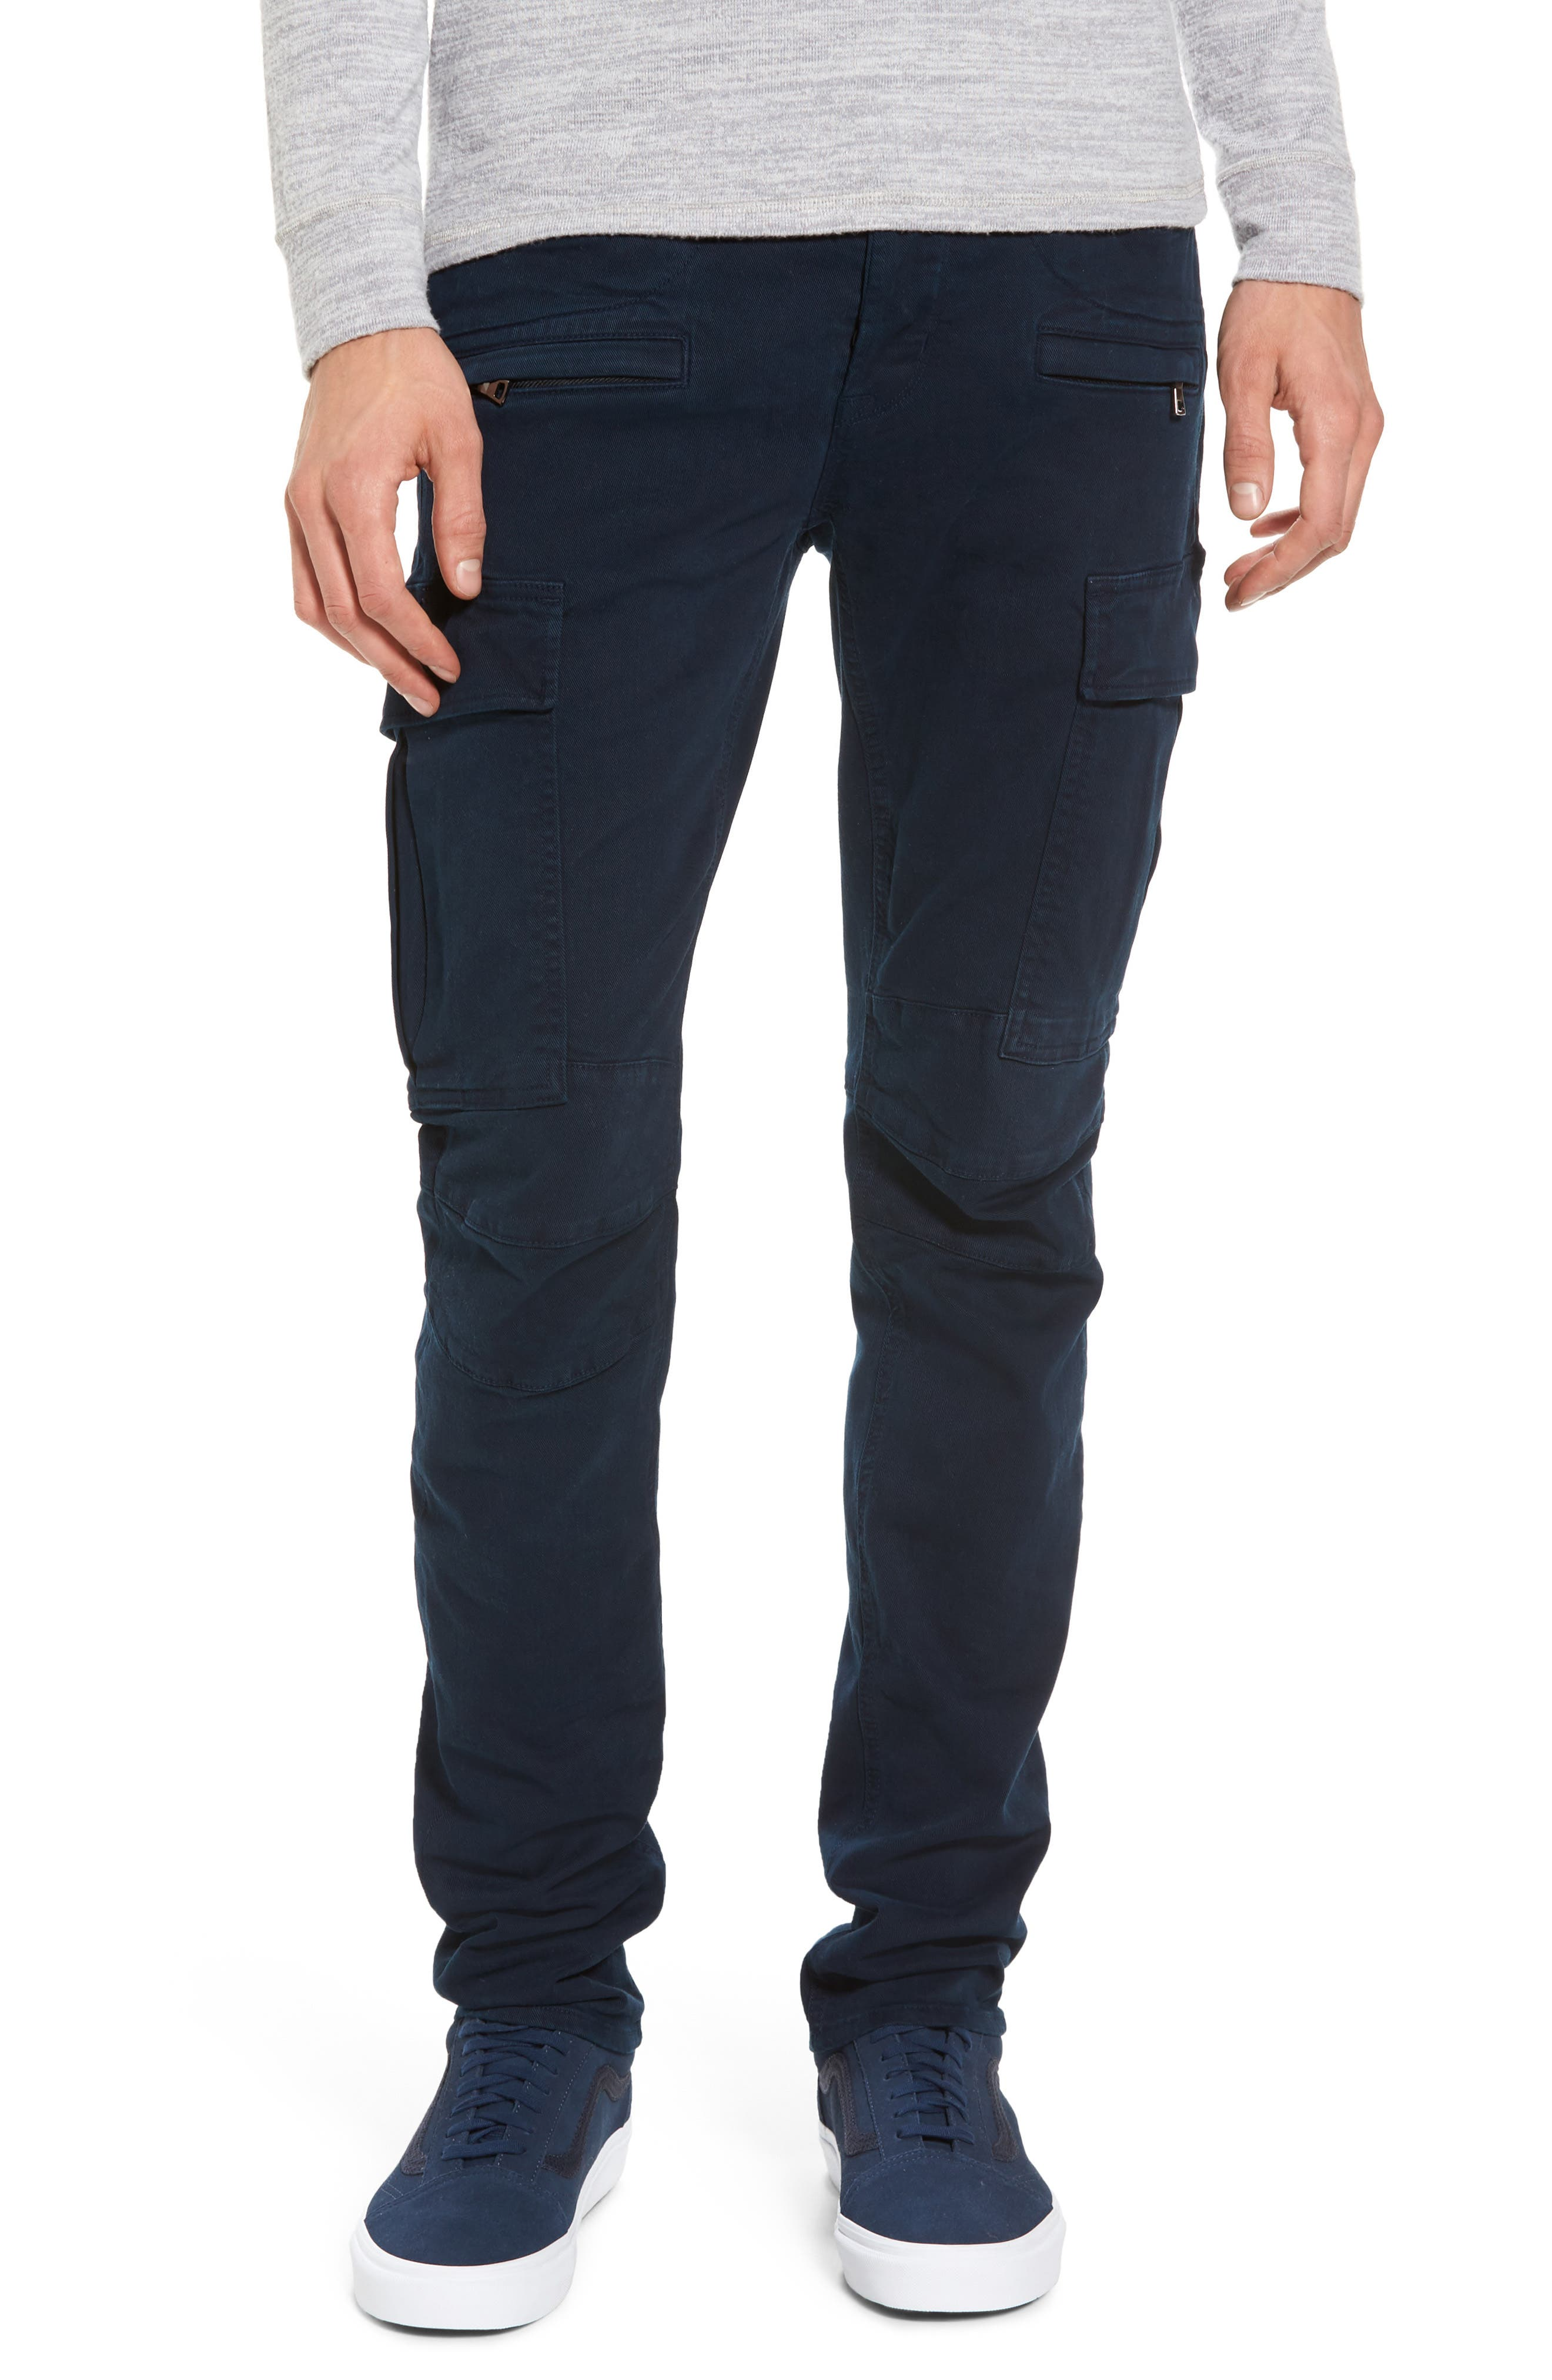 Greyson Cargo Biker Skinny Fit Jeans,                             Main thumbnail 1, color,                             Ink